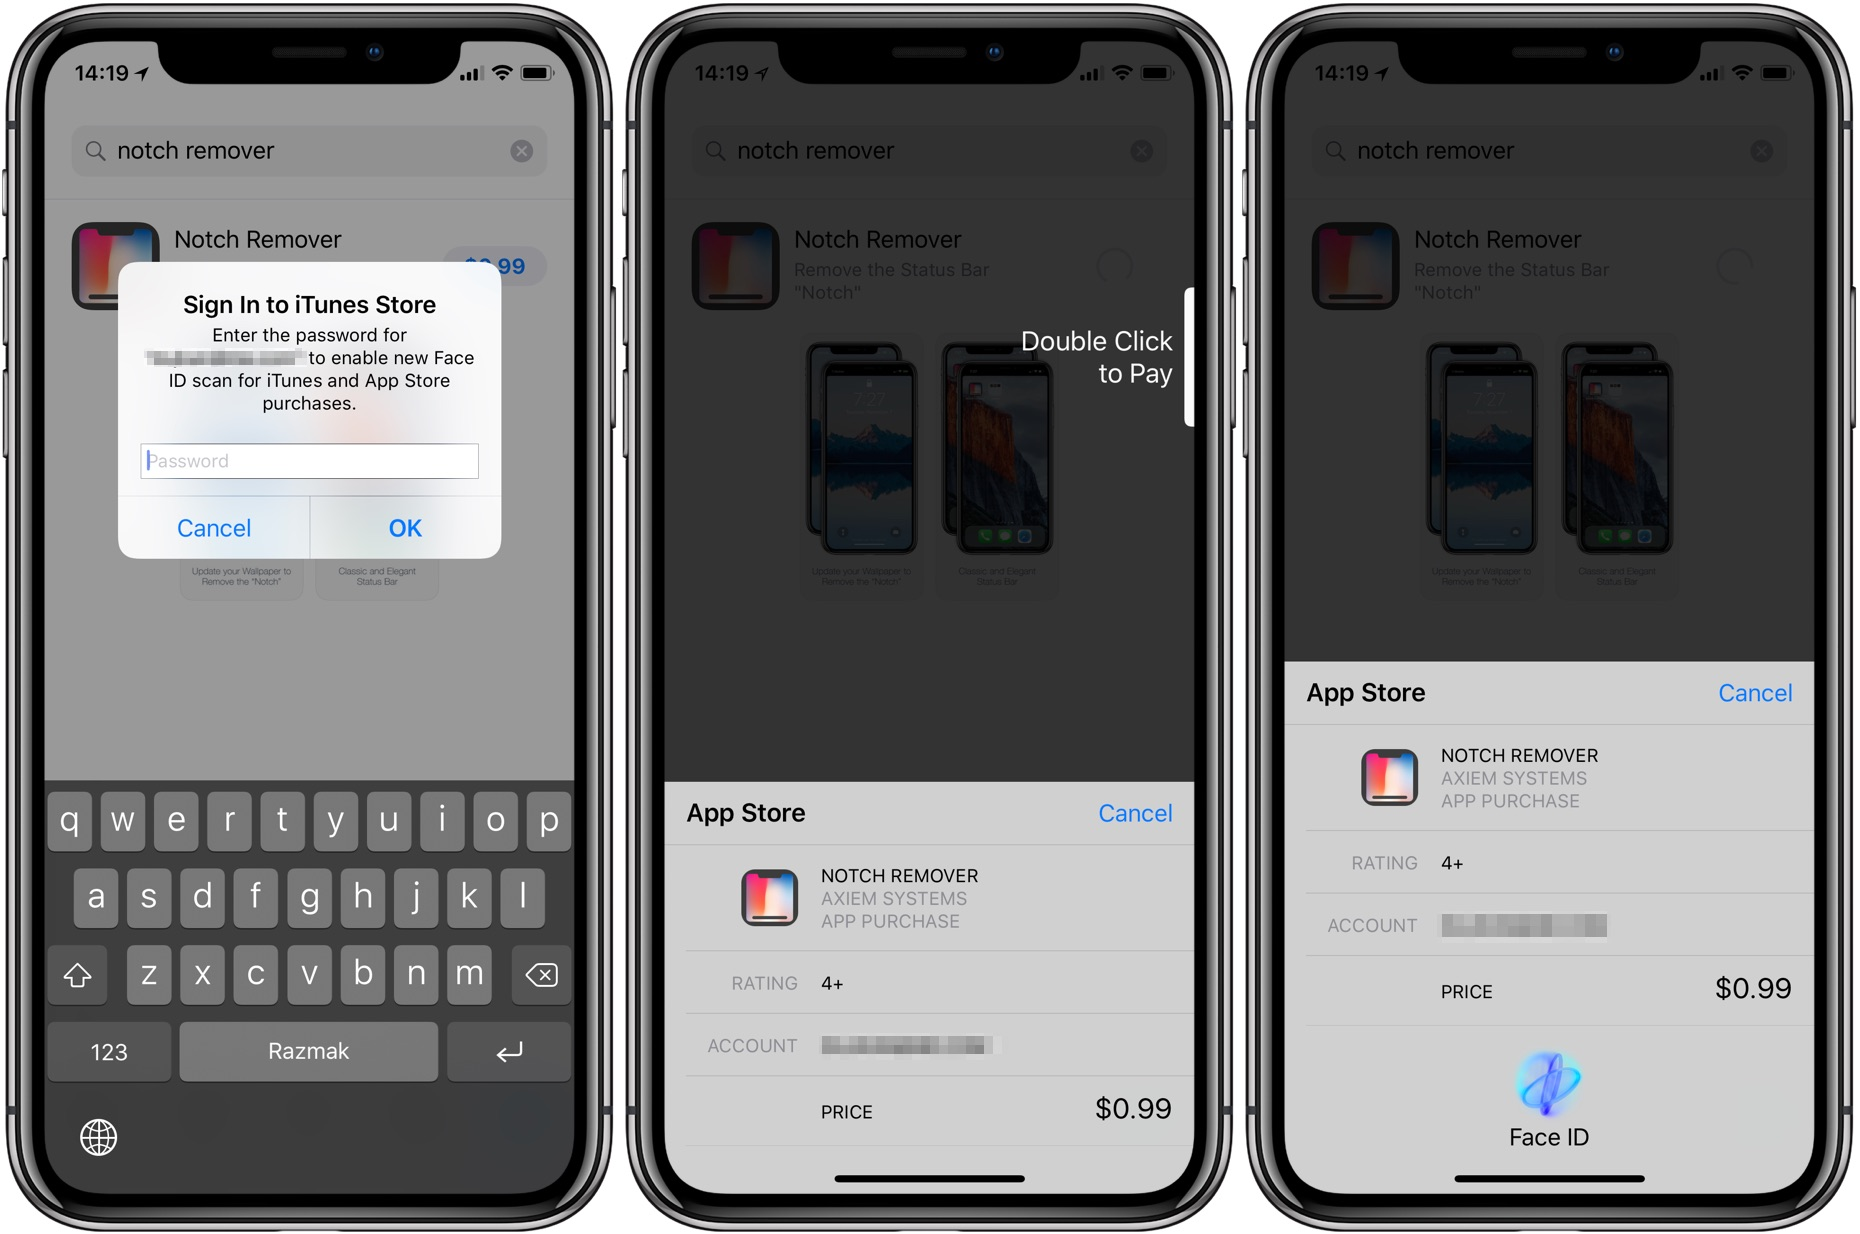 How to buy apps with iPhone X using Face ID